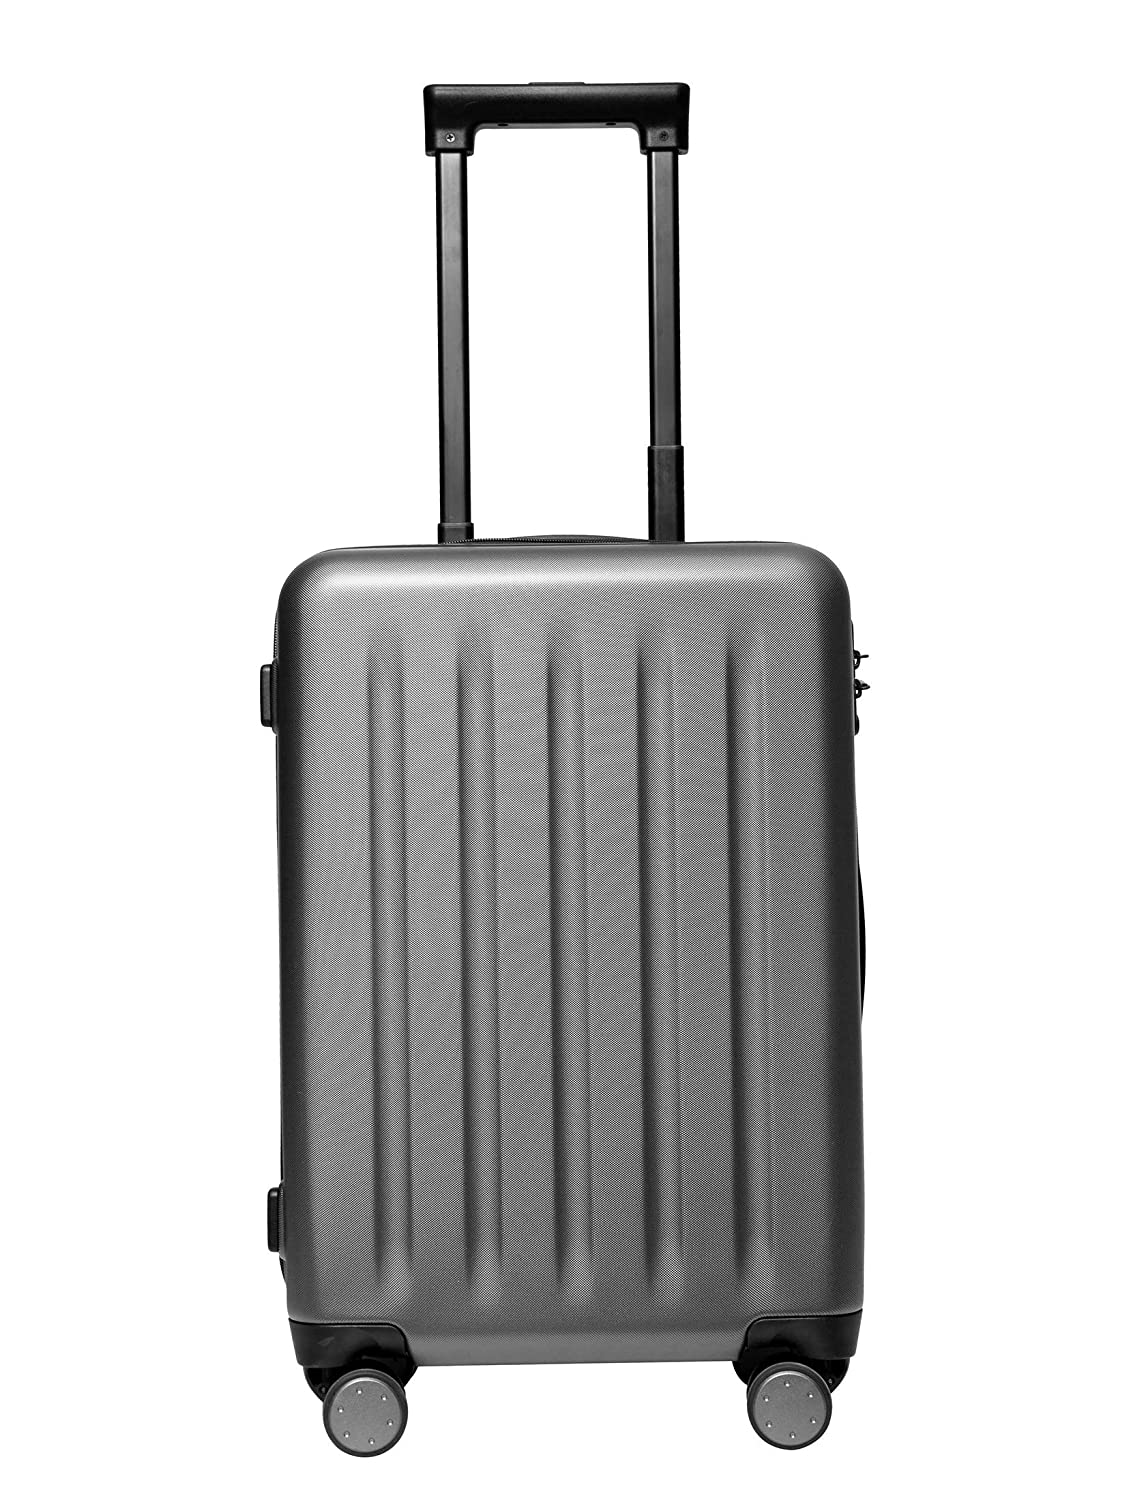 Mi Polycarbonate 24″ (61cms) Grey, Hardsided Check-in Luggage (XDLGX-02)